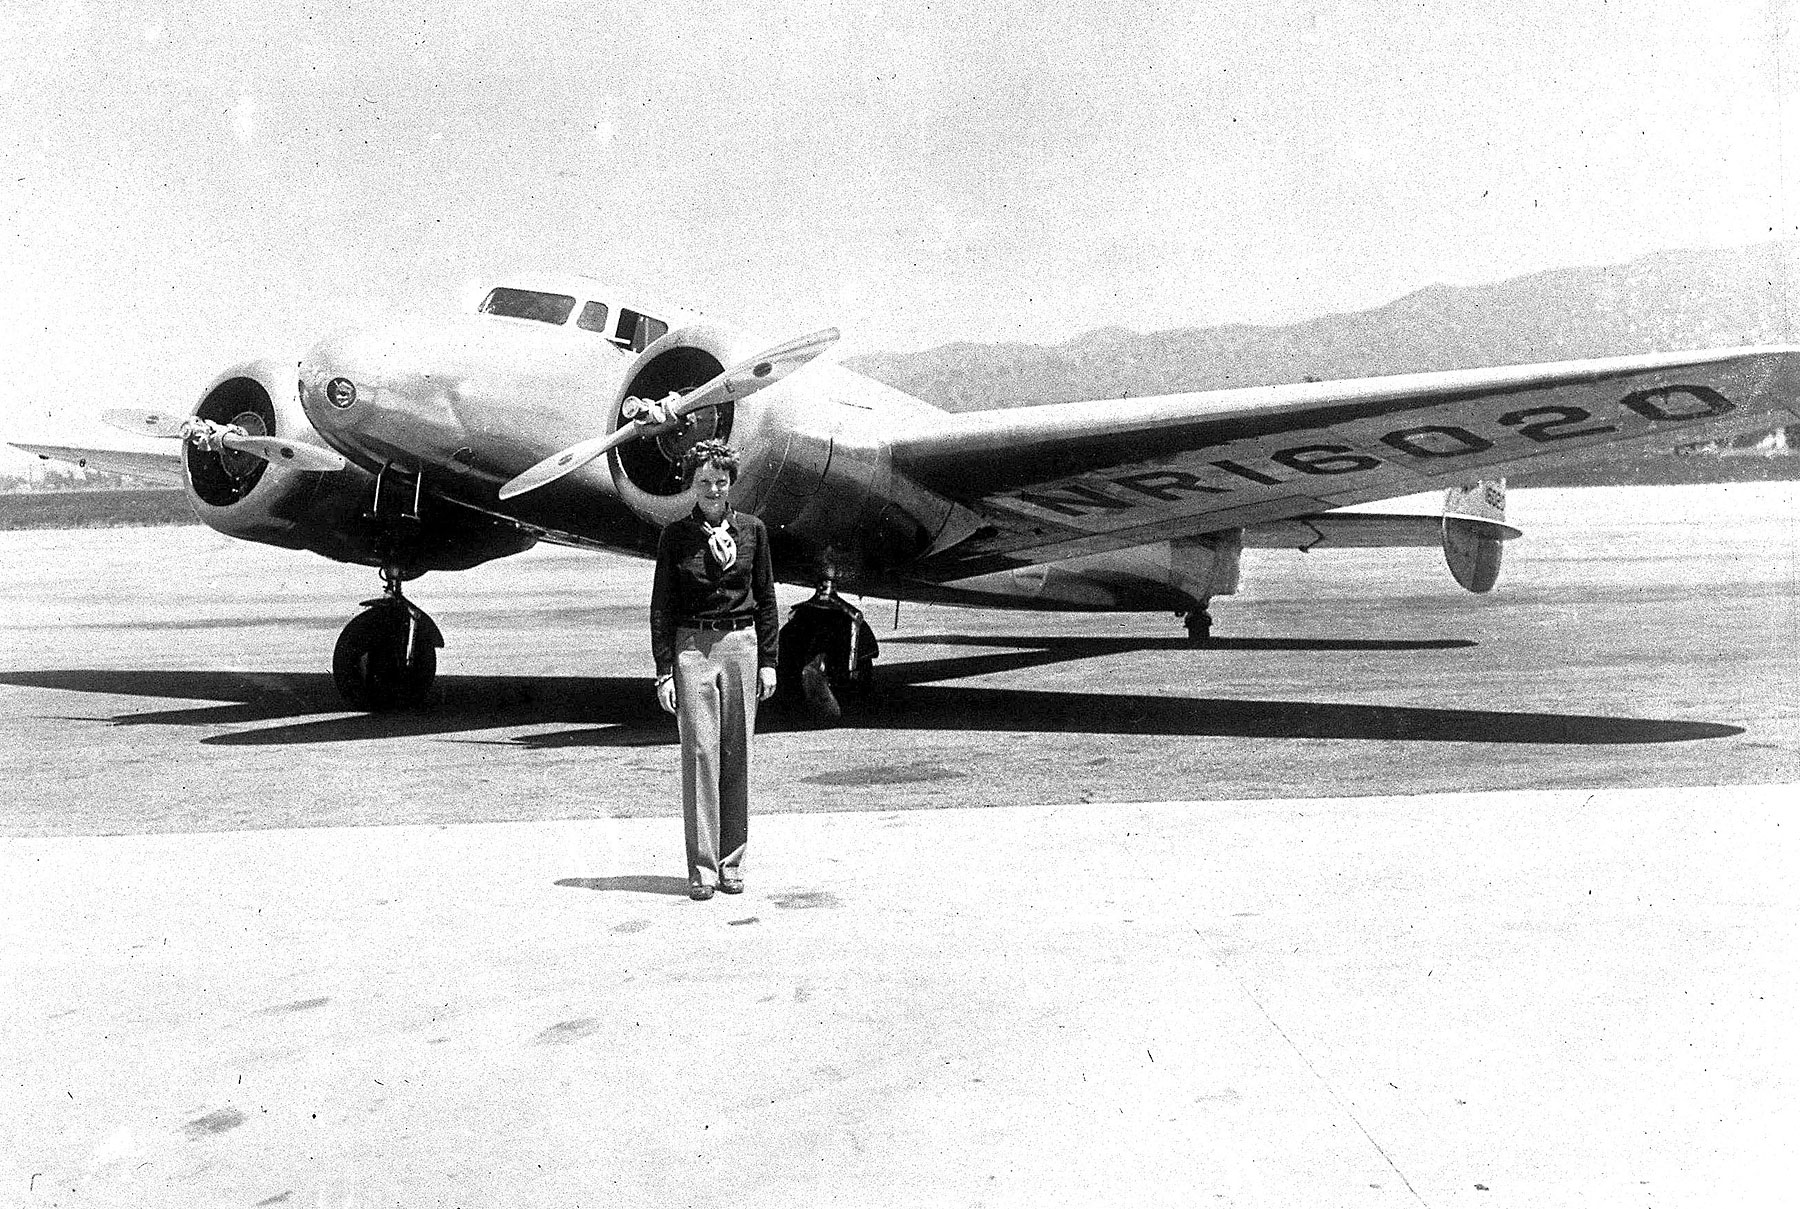 Amelia Earhart is pictured with her Flying Laboratory in which she attempted to fly around the world from Oakland, Ca.